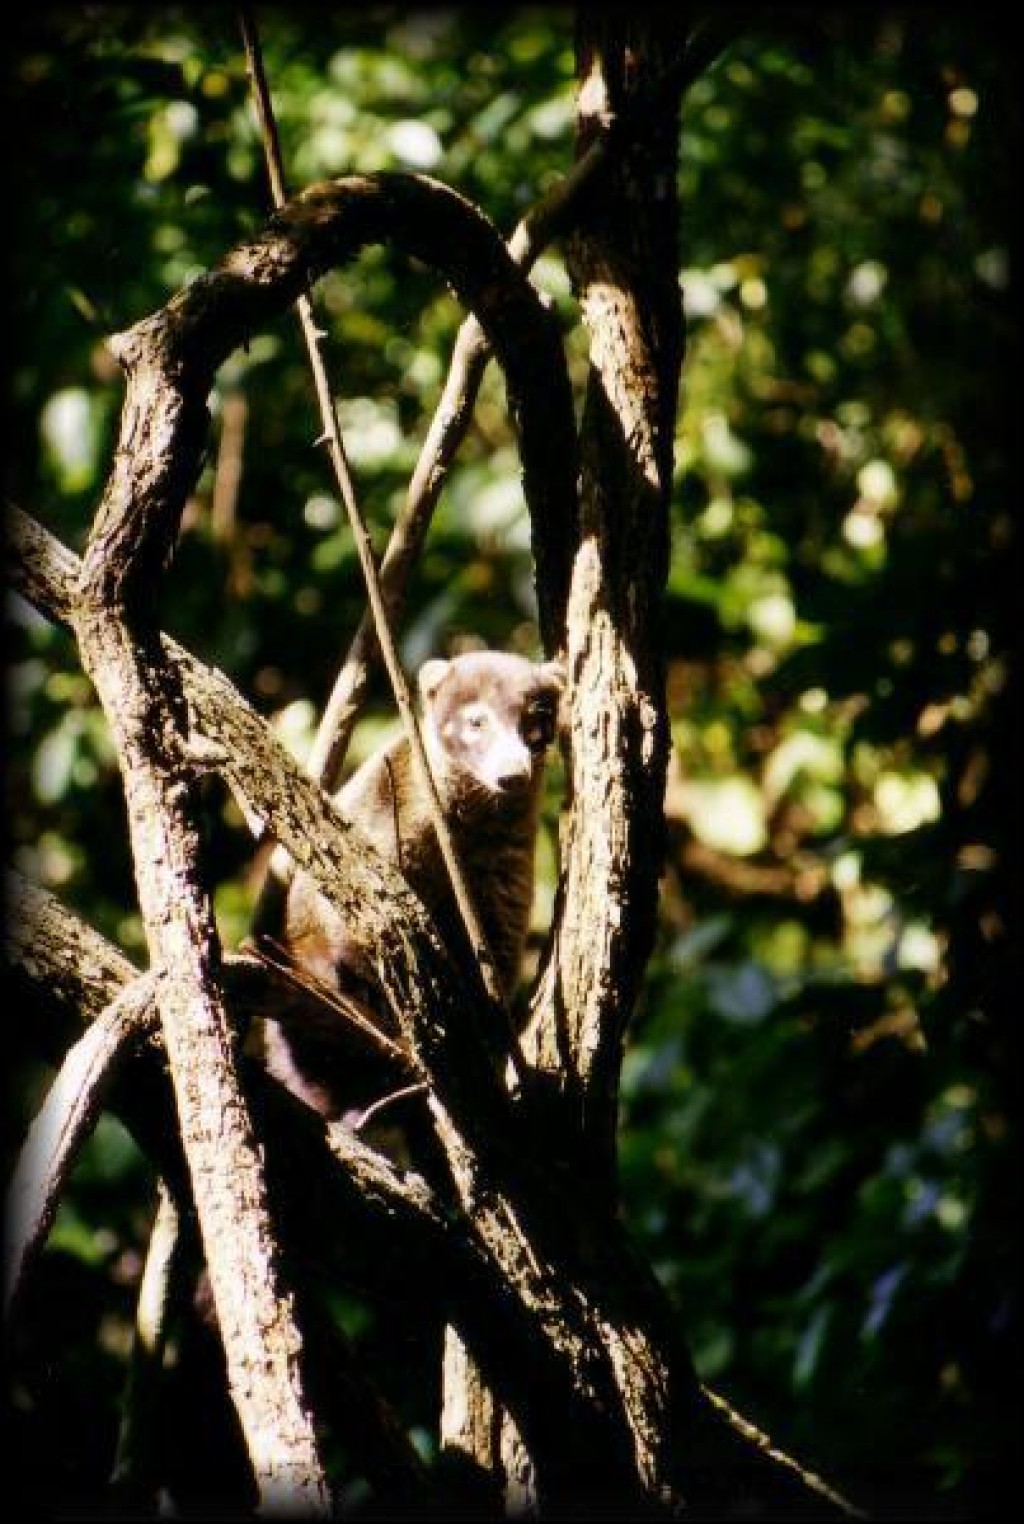 We saw a coati hiding in the trees.